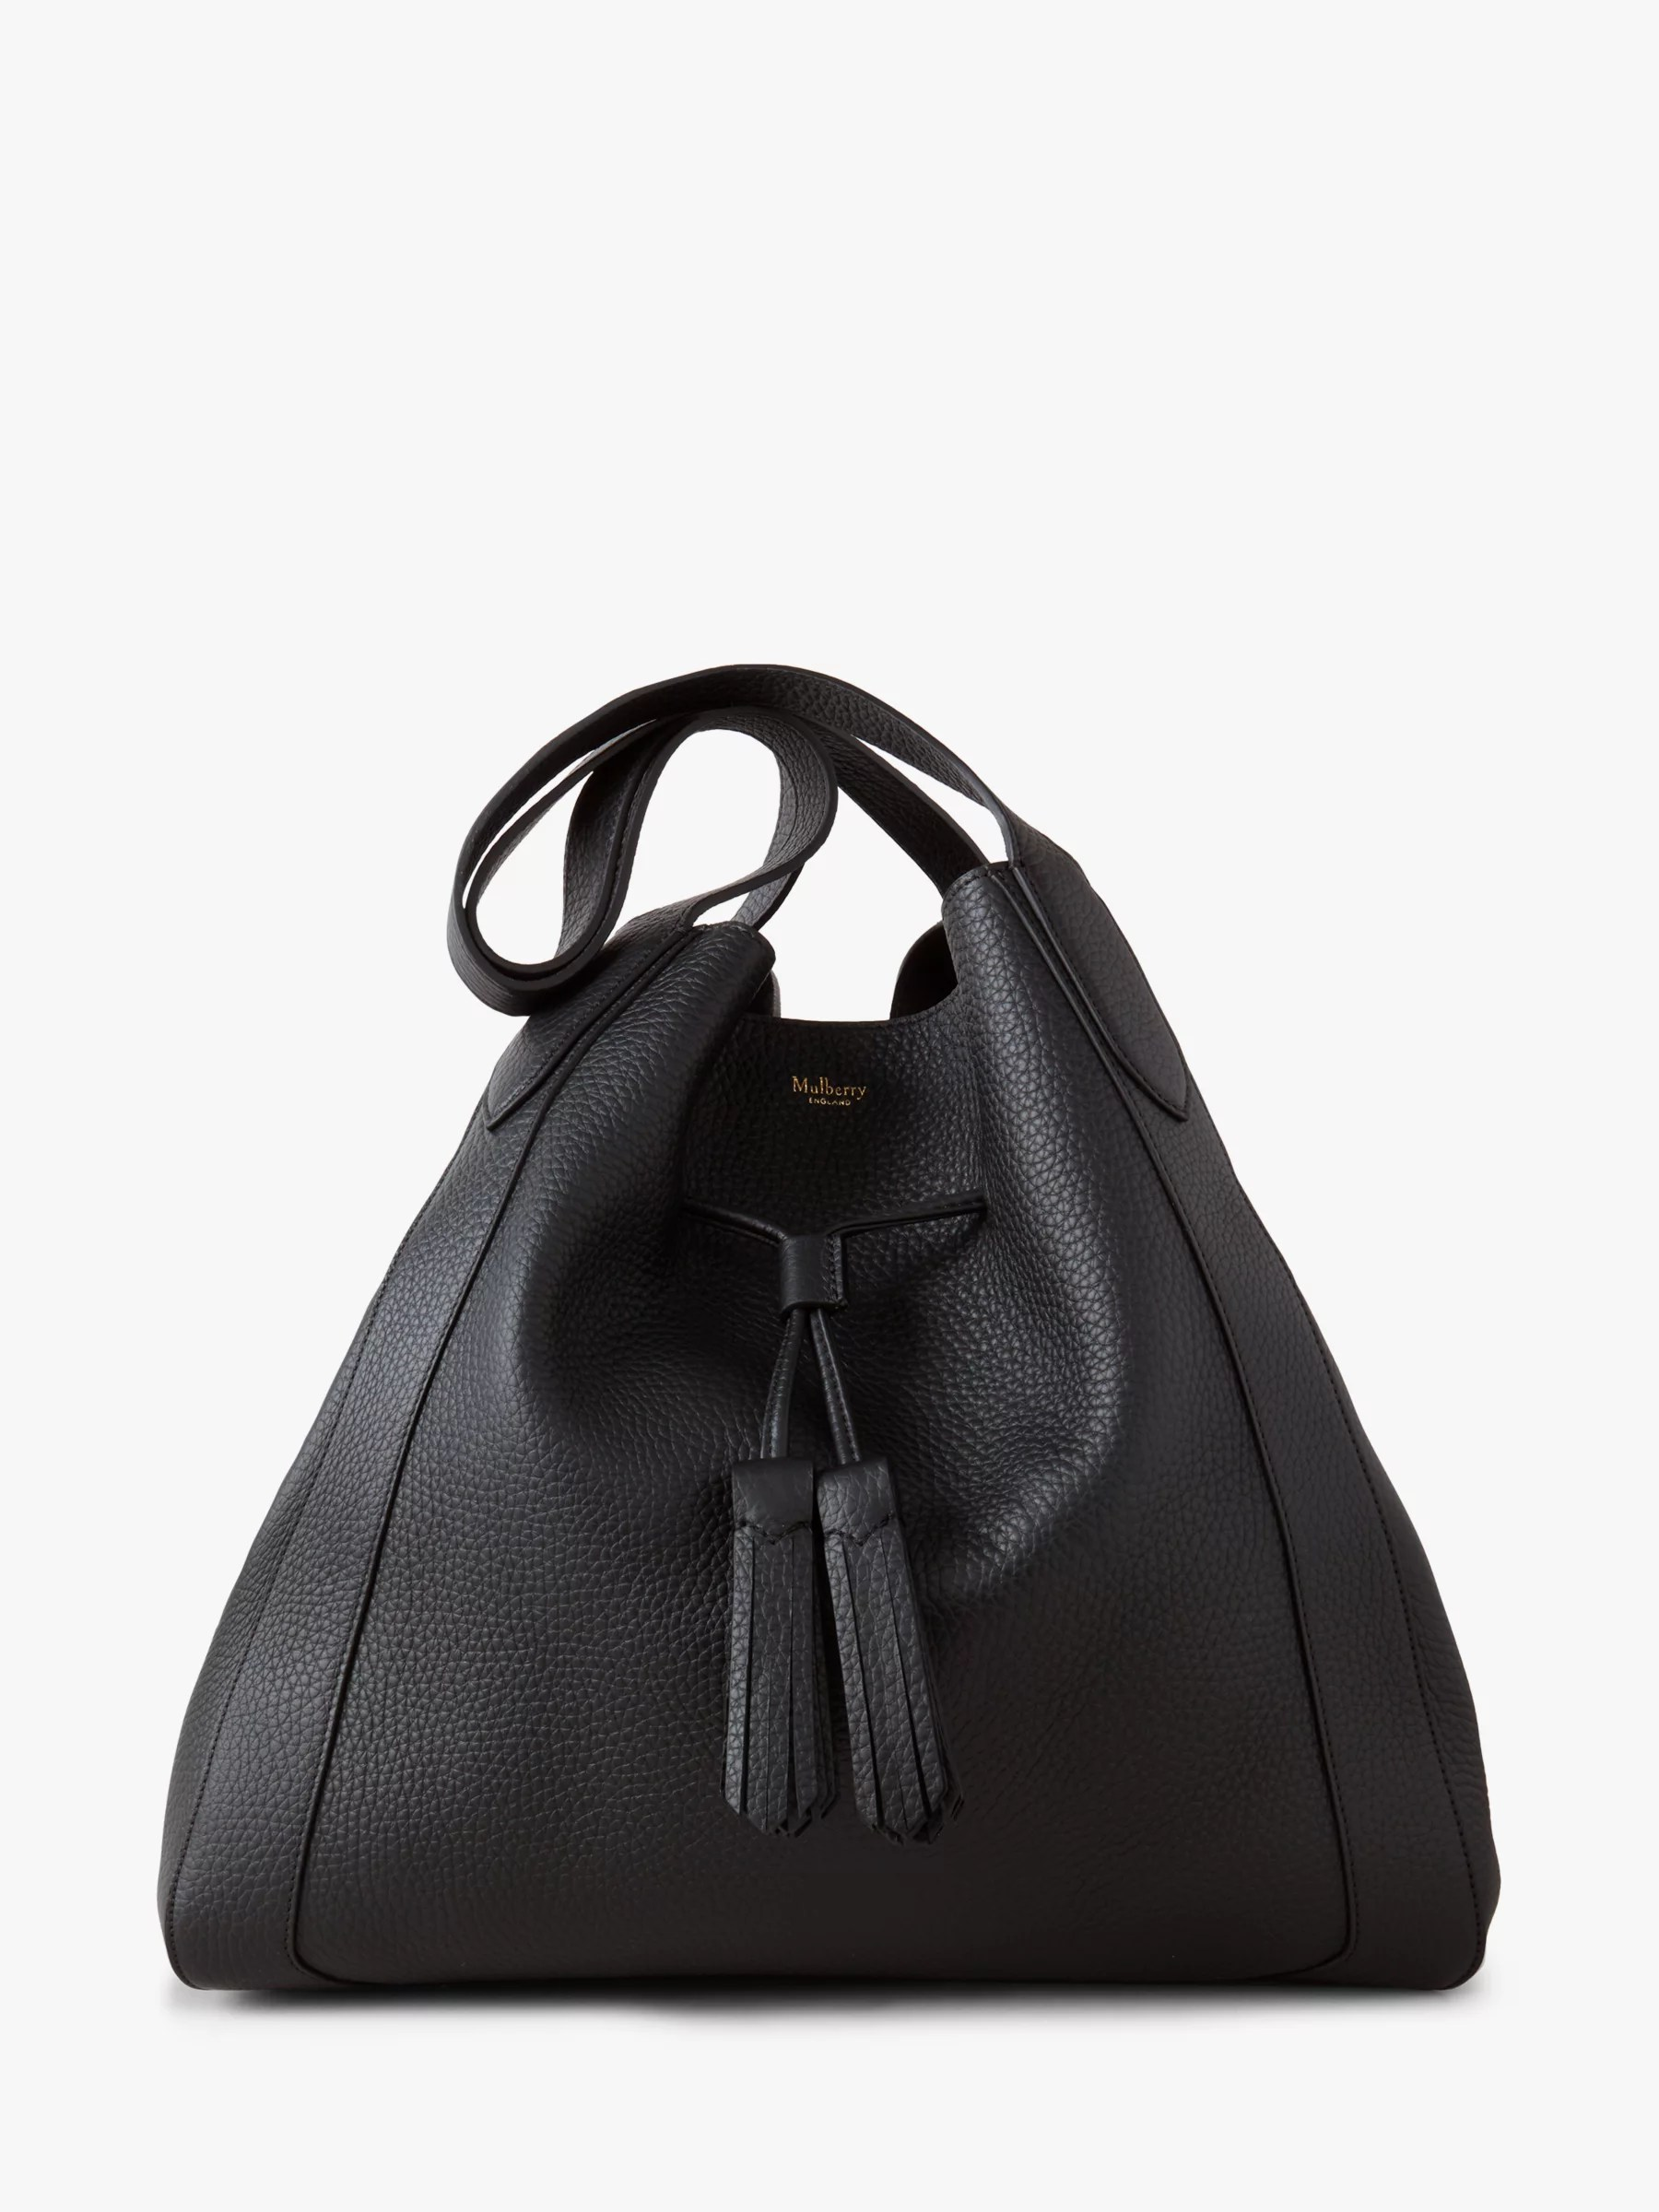 Baby Bags John Lewis Mulberry Millie Heavy Grain Leather Tote Bag At John Lewis